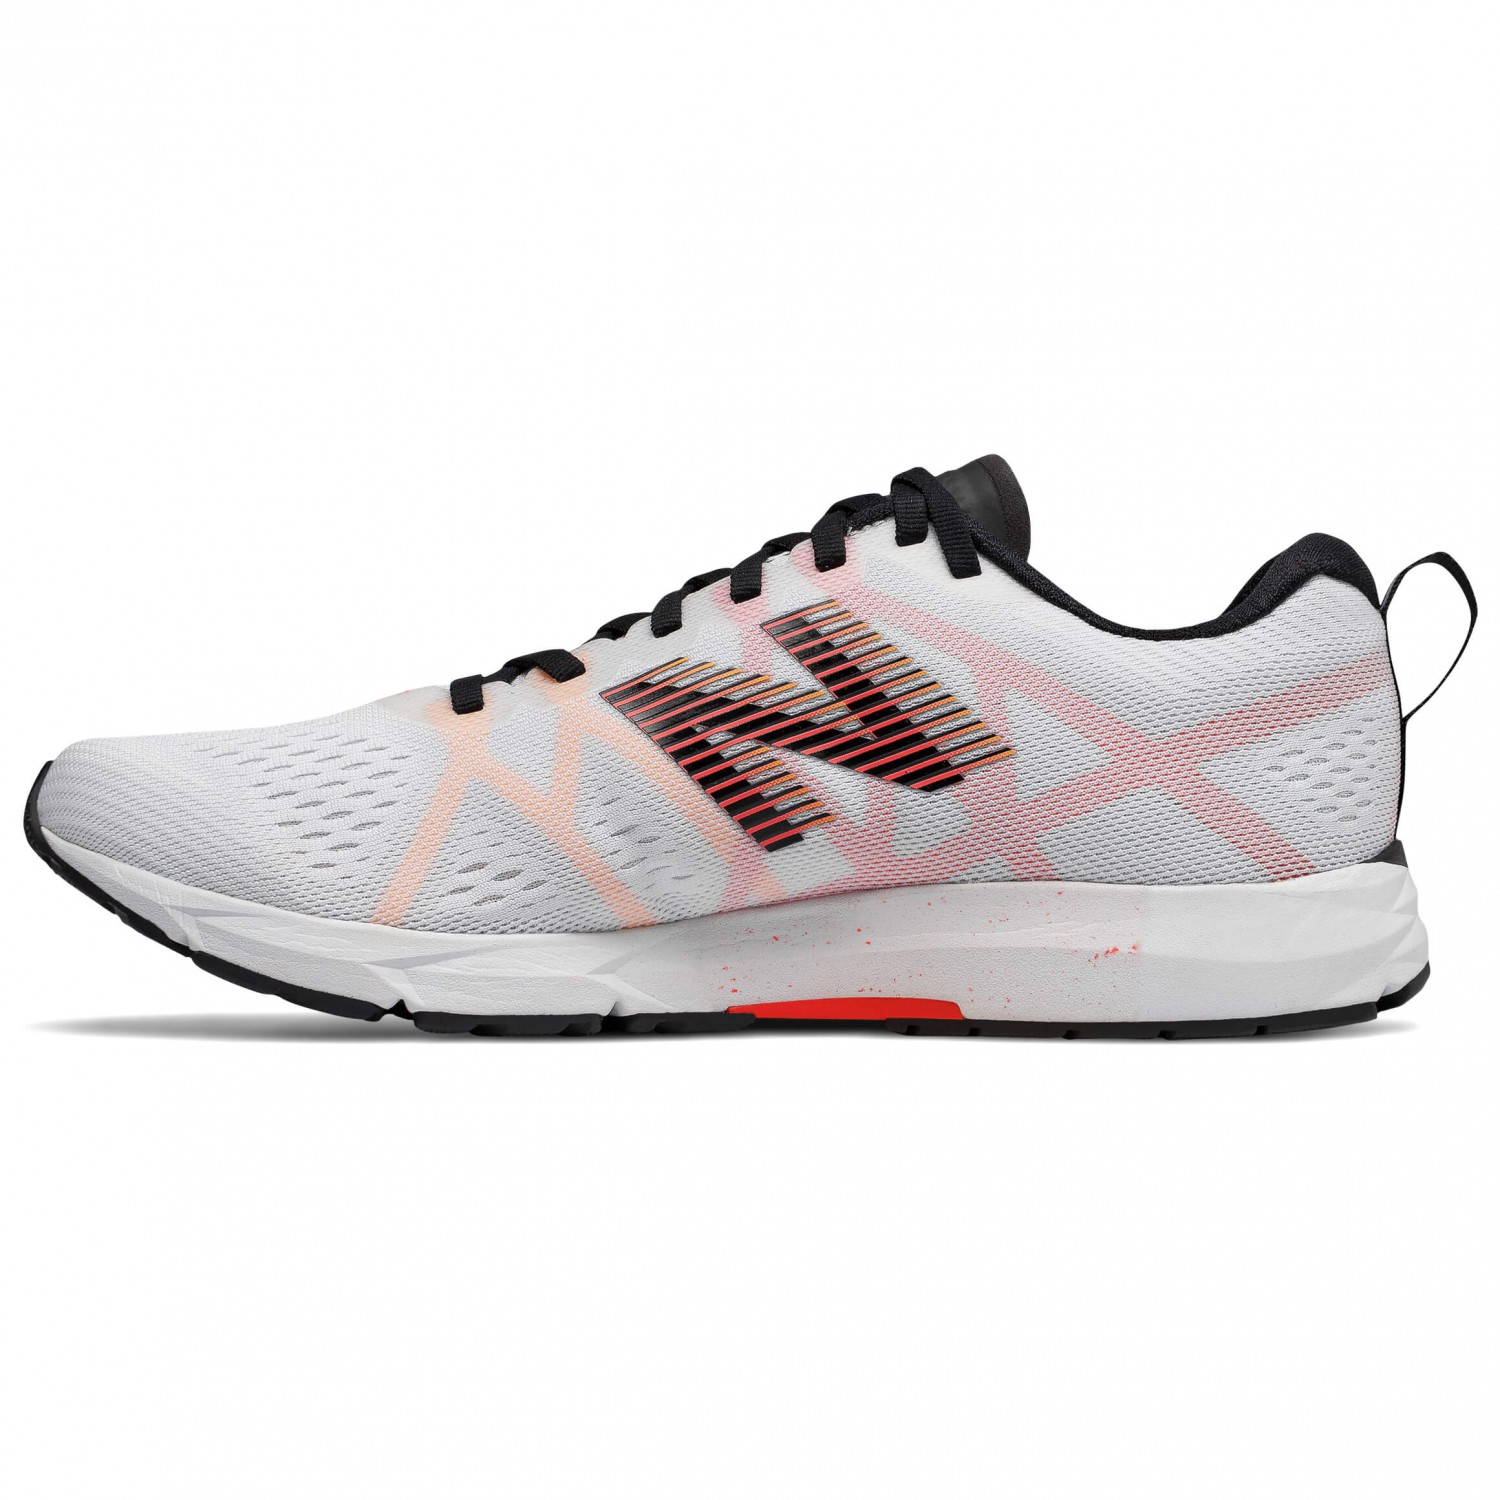 promo code a23f5 79693 New Balance Running Lacet 1500 V4 Boa - Running Shoes Men's ...